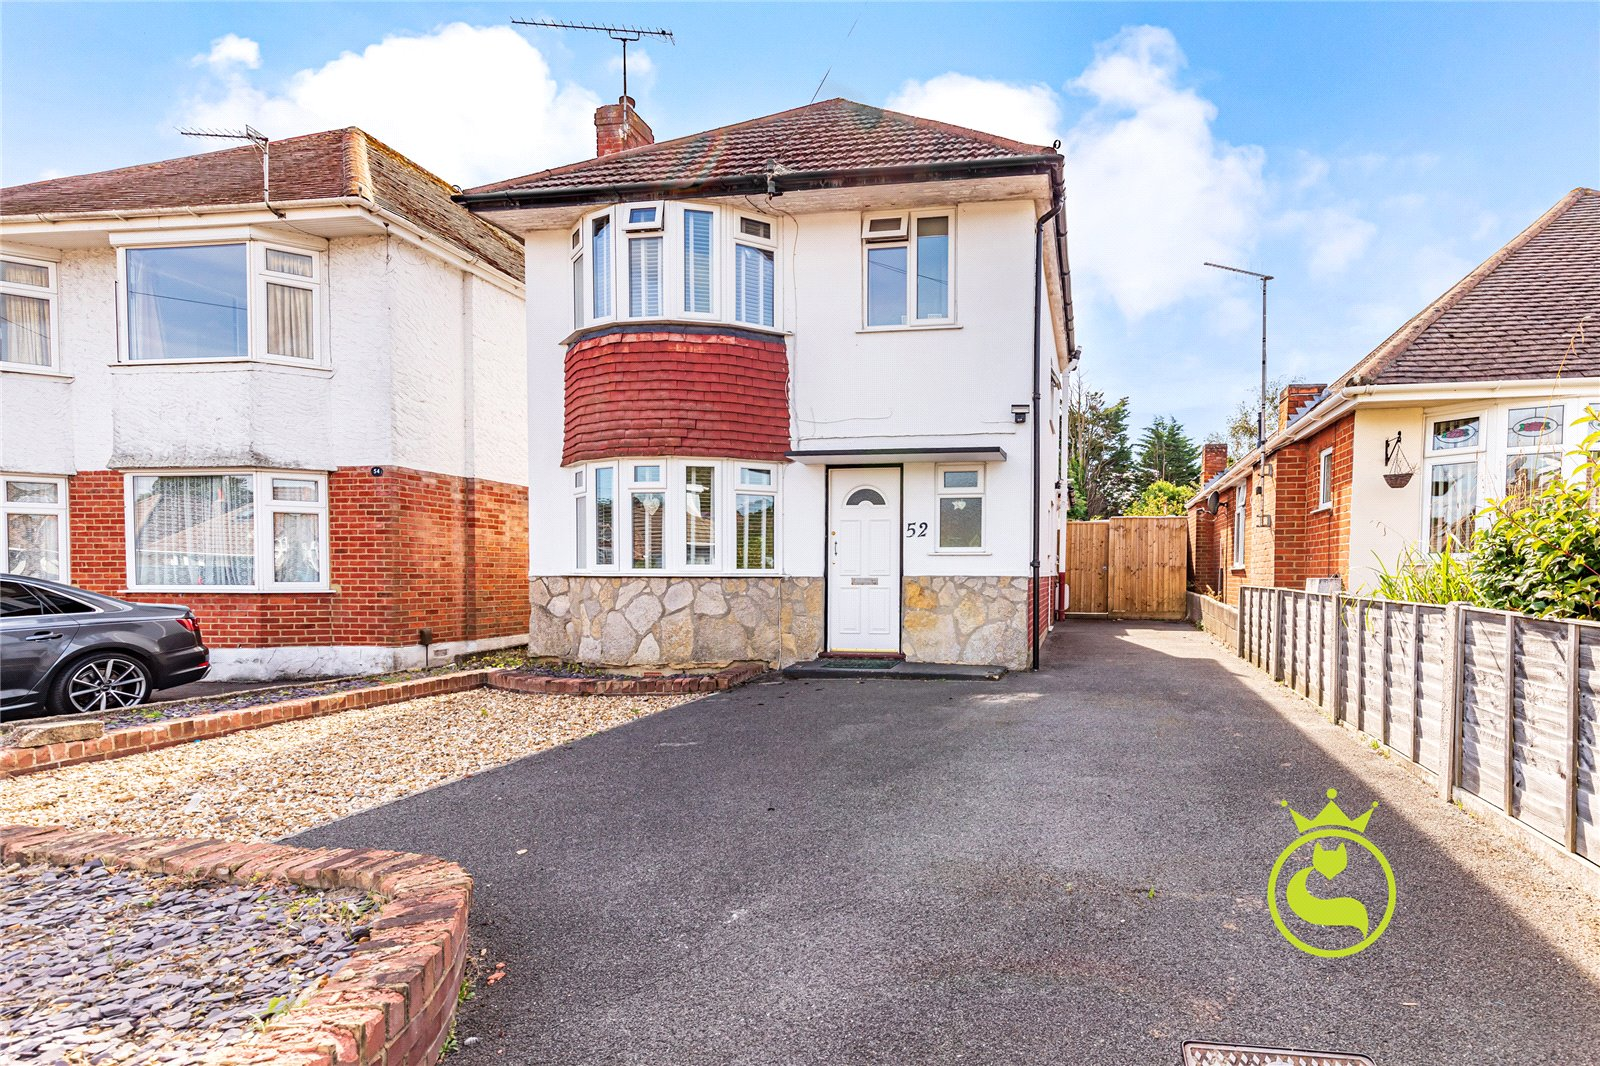 3 bed house for sale in Beresford Road, Parkstone  - Property Image 1